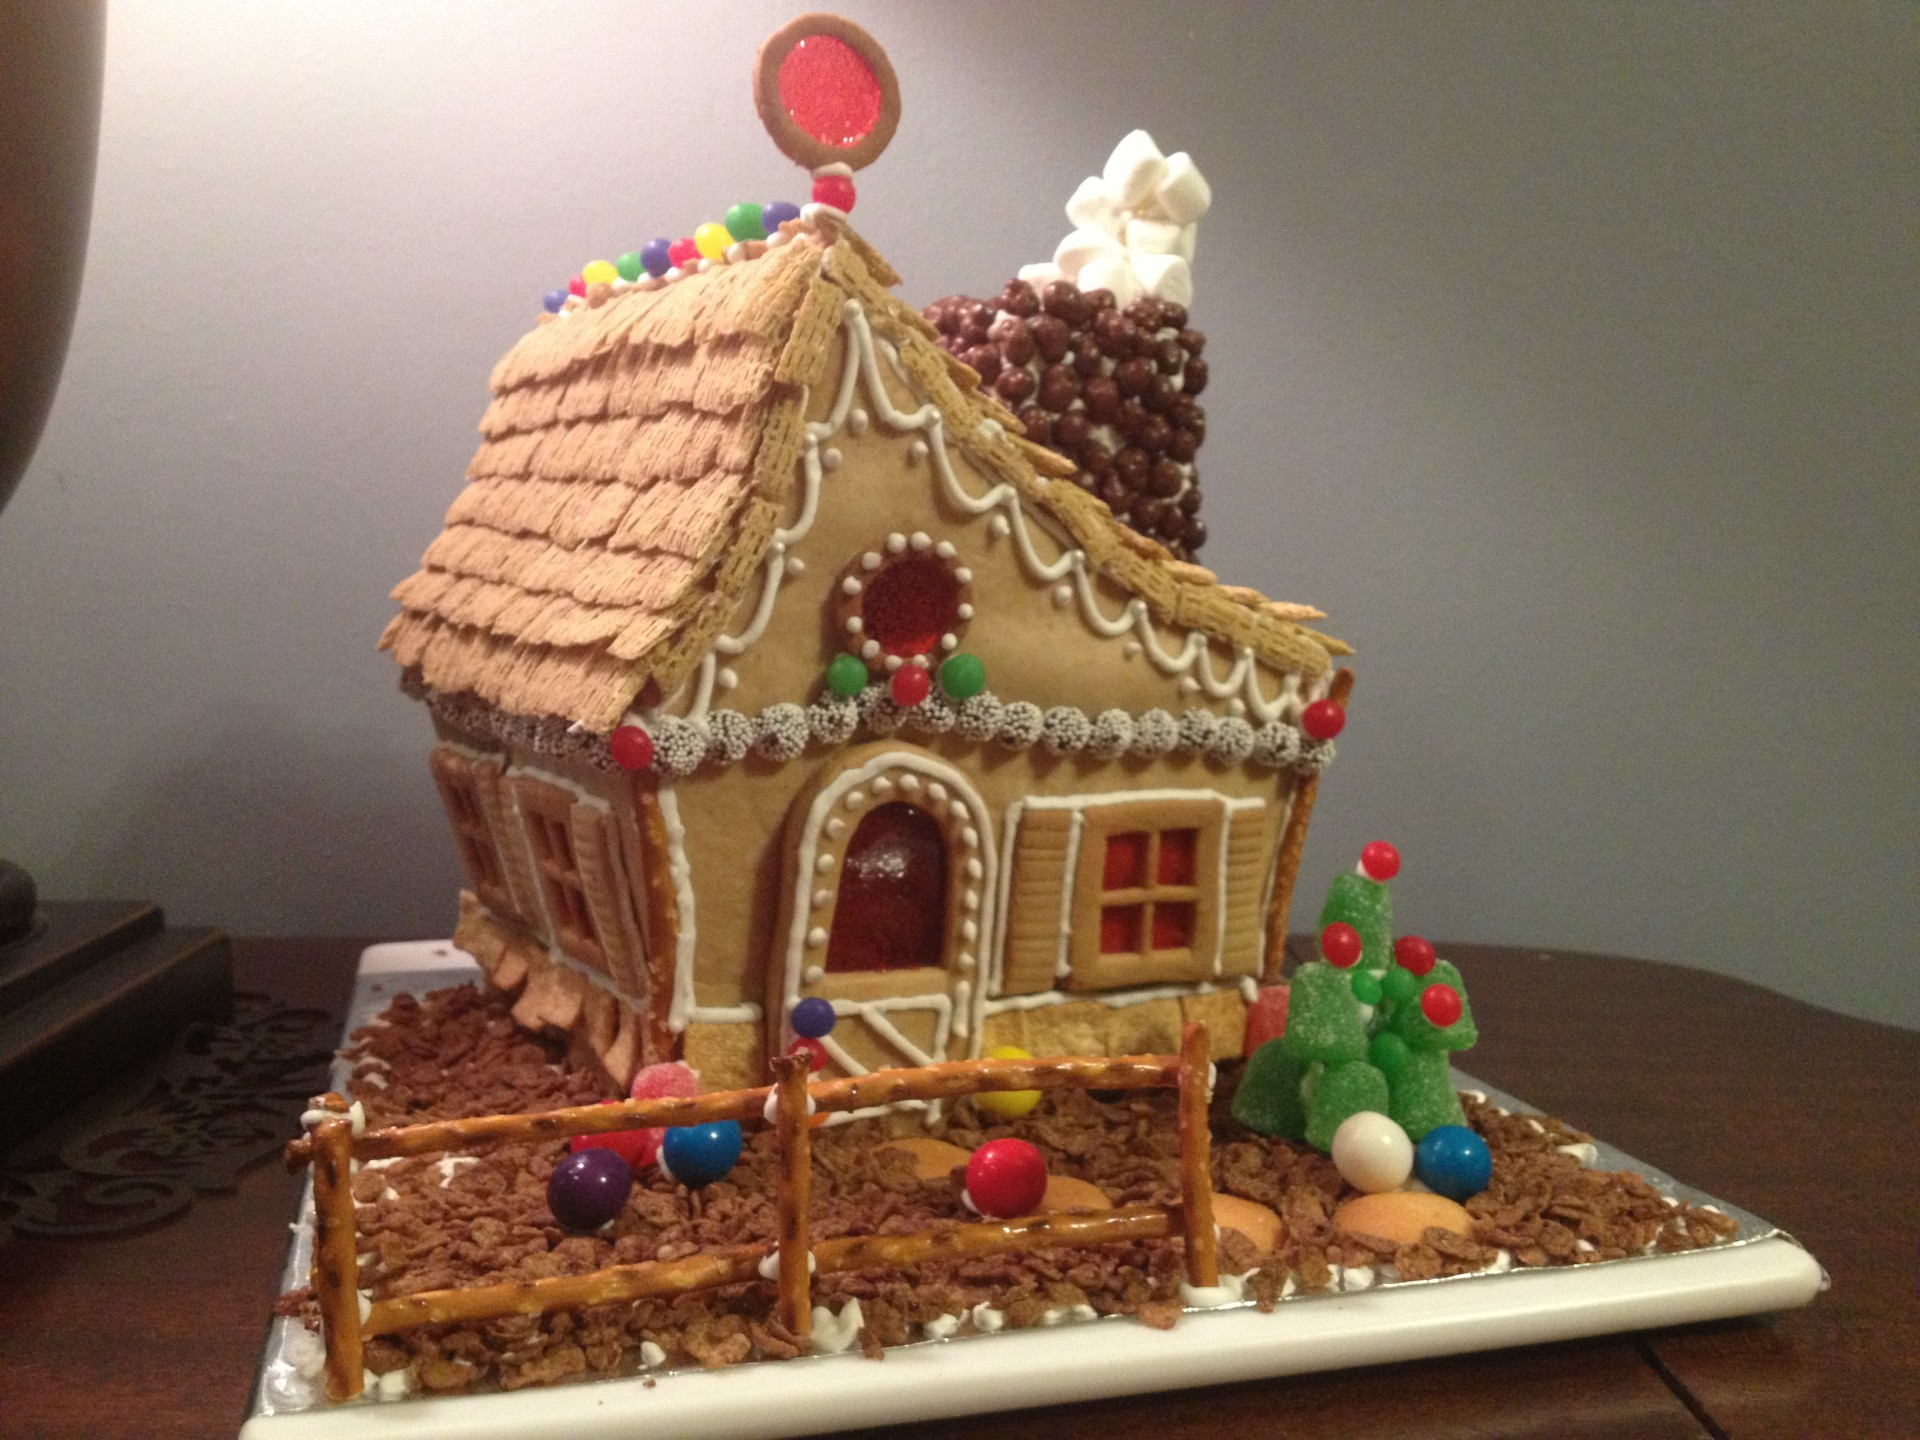 Winter Wallpaper For Iphone 4 Gingerbread House Free Stock Photo Public Domain Pictures